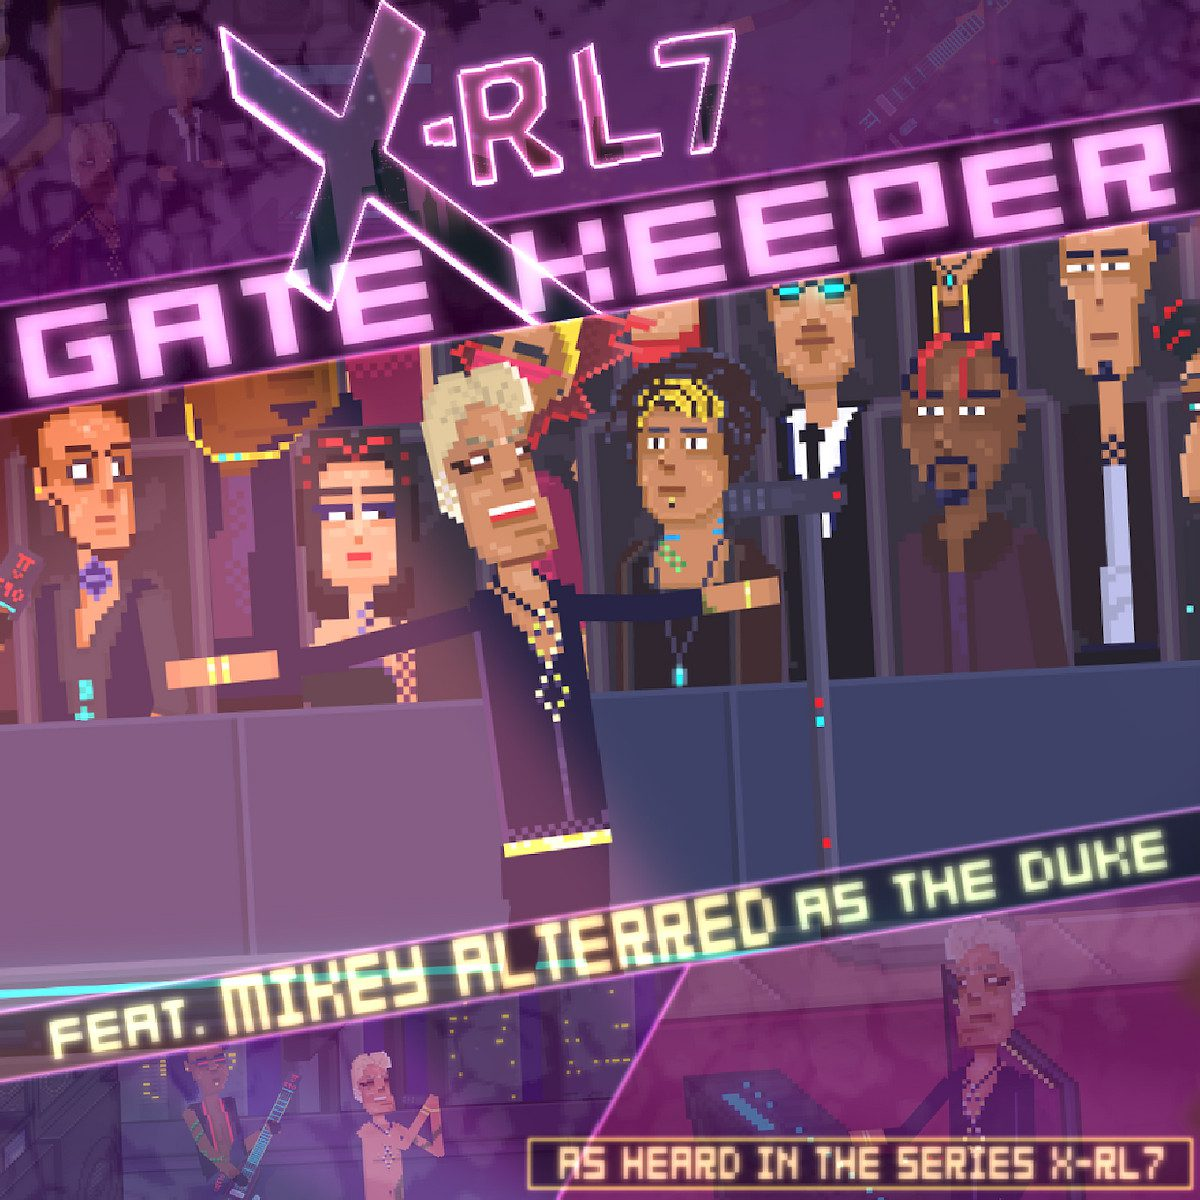 New episode (and EP) in X-RL7 animation series feat. SHIV-R, Amelia Arsenic, Aesthetic Perfection and more